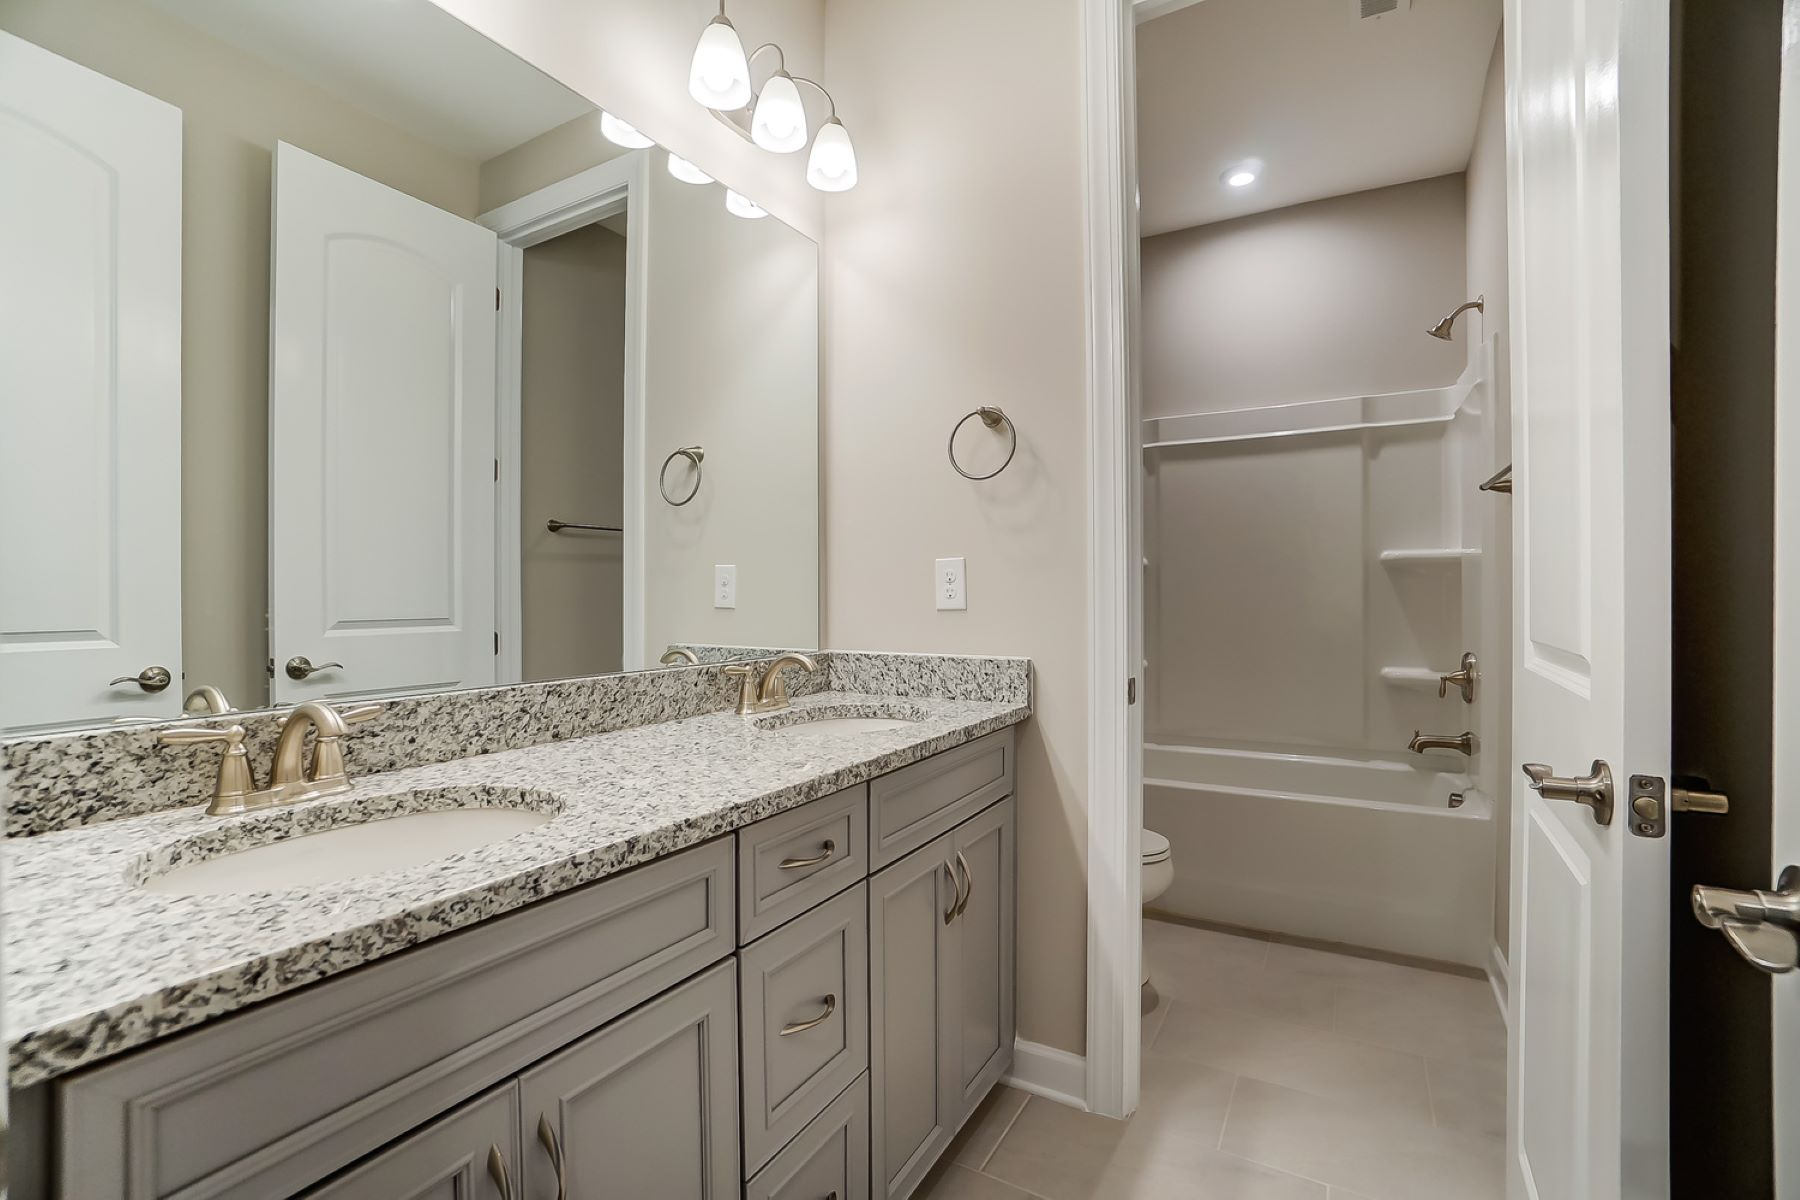 Astaire Plan Bath at Sonata at Mint Hill in Mint Hill North Carolina by Mattamy Homes